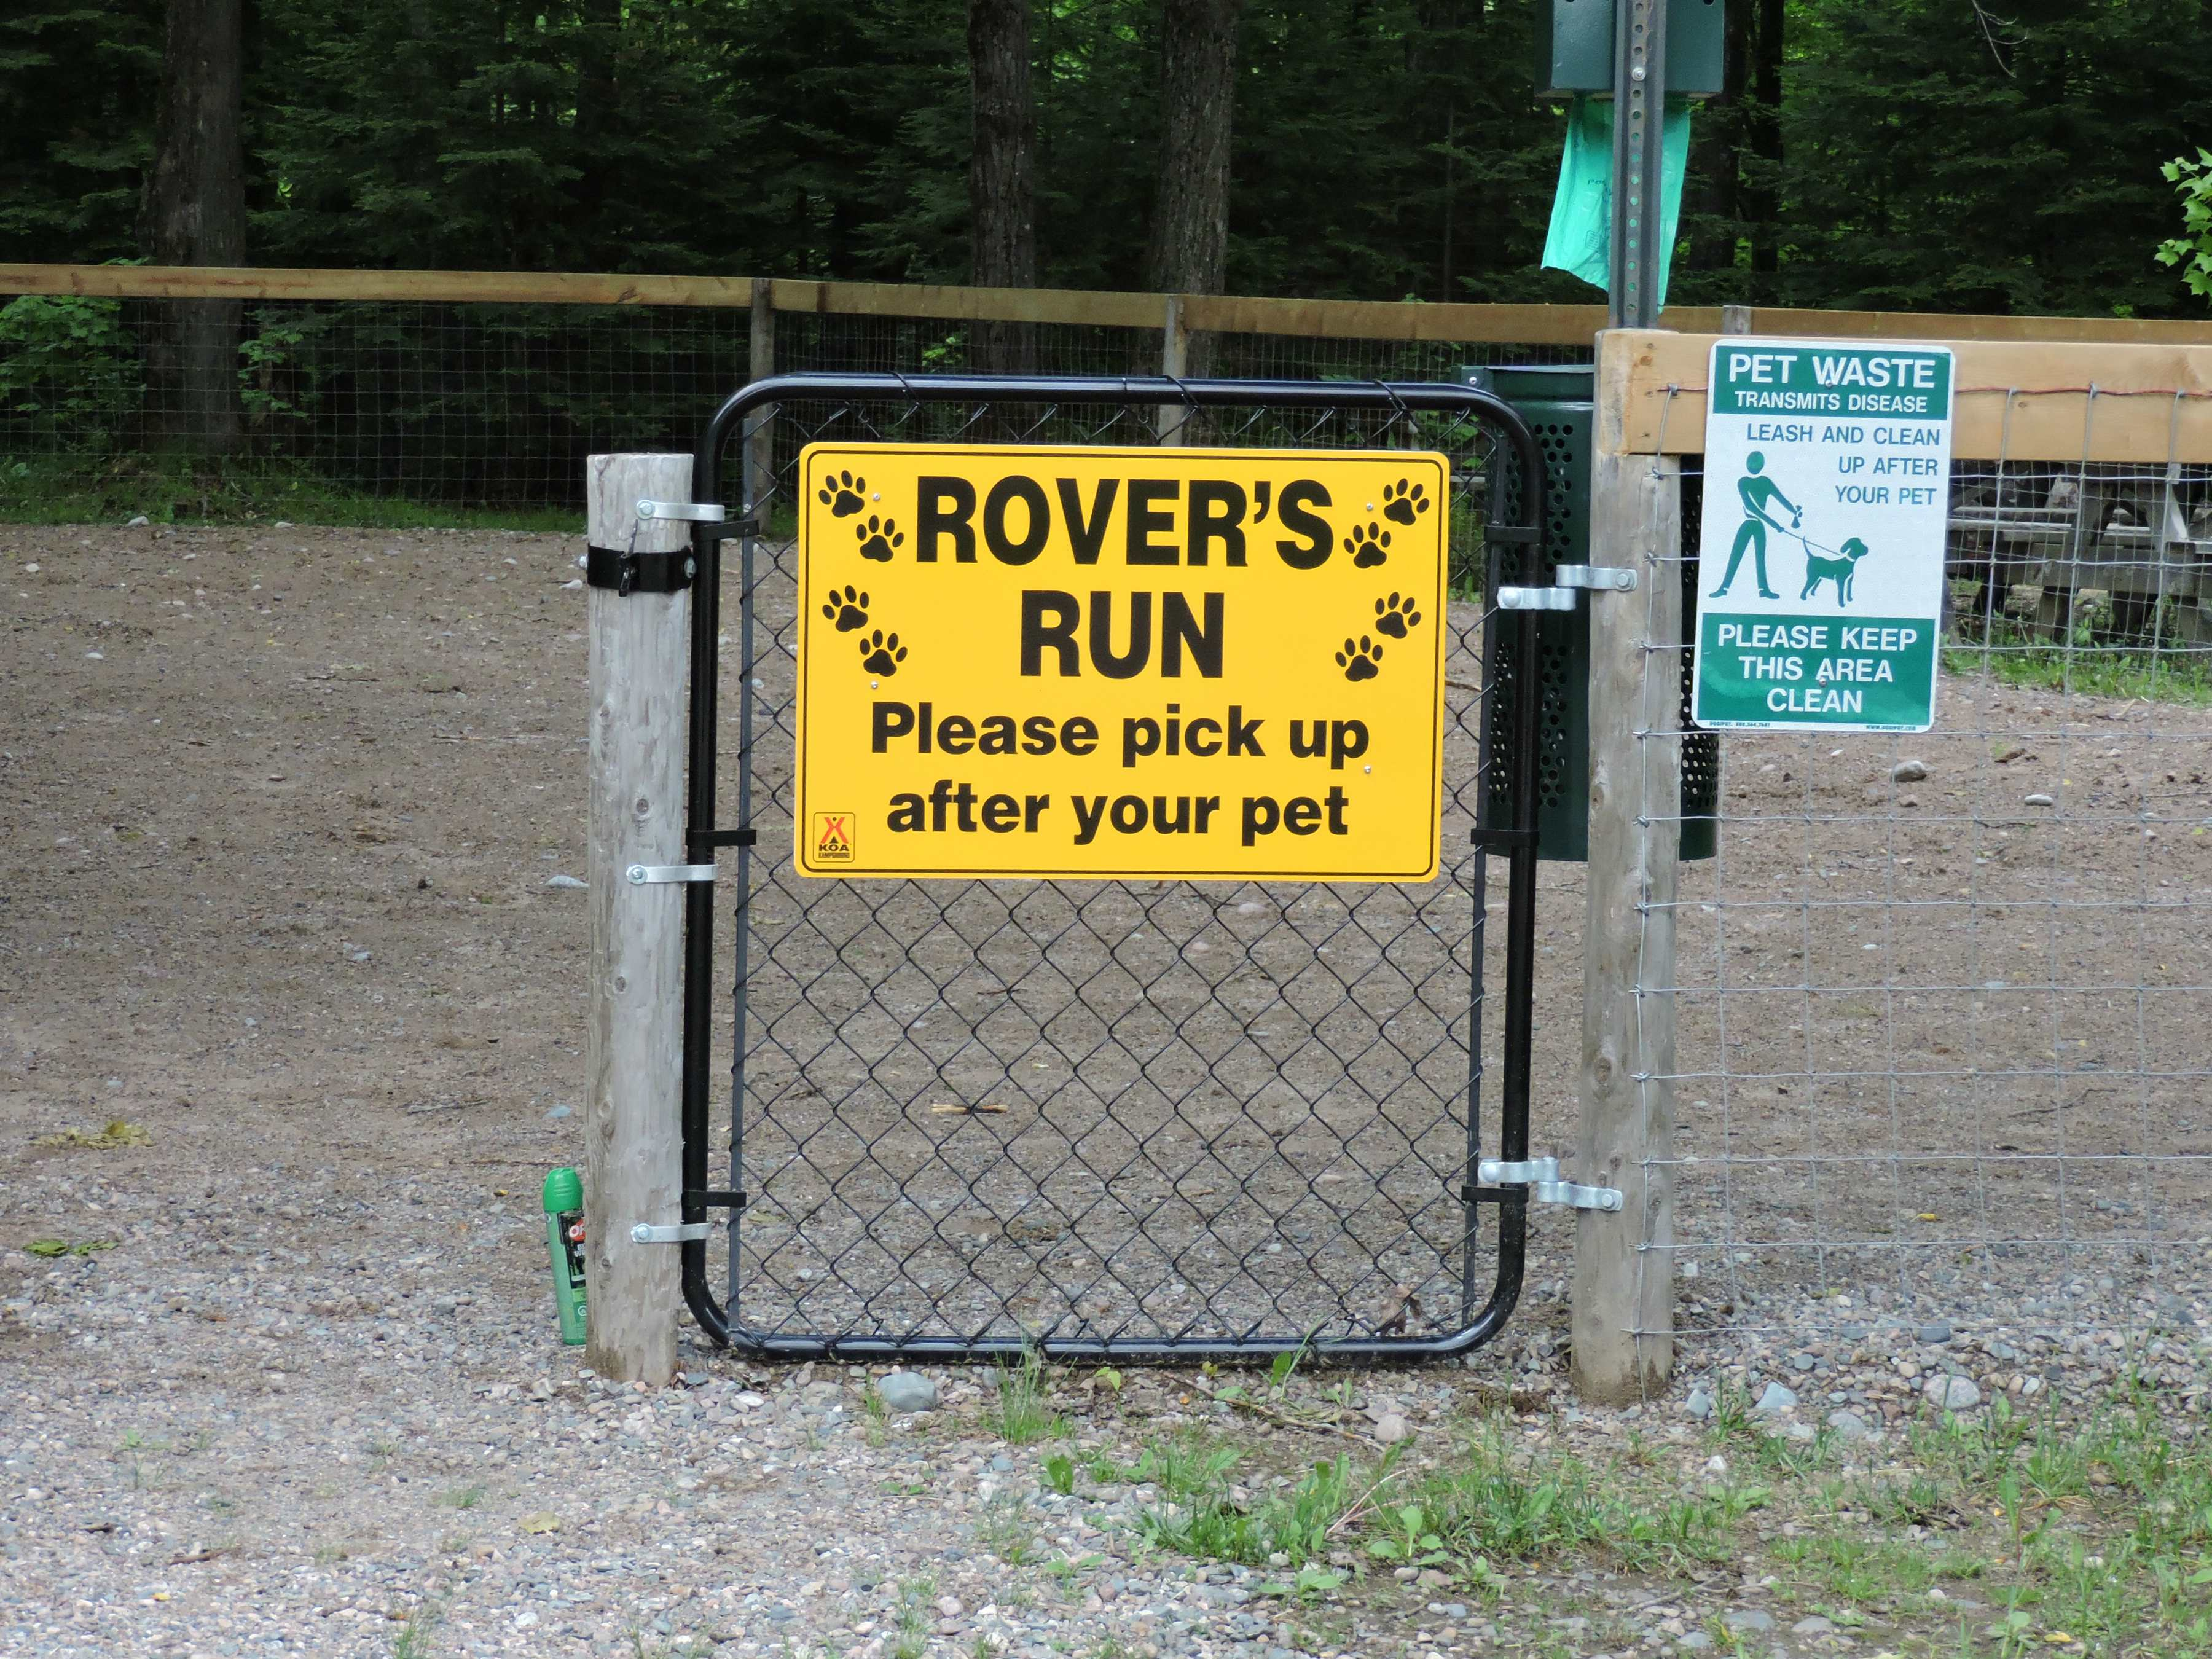 gate to Rover's Run dog run area at KOA Holiday dog-friendly campground in sault ste. Marie, Ontario